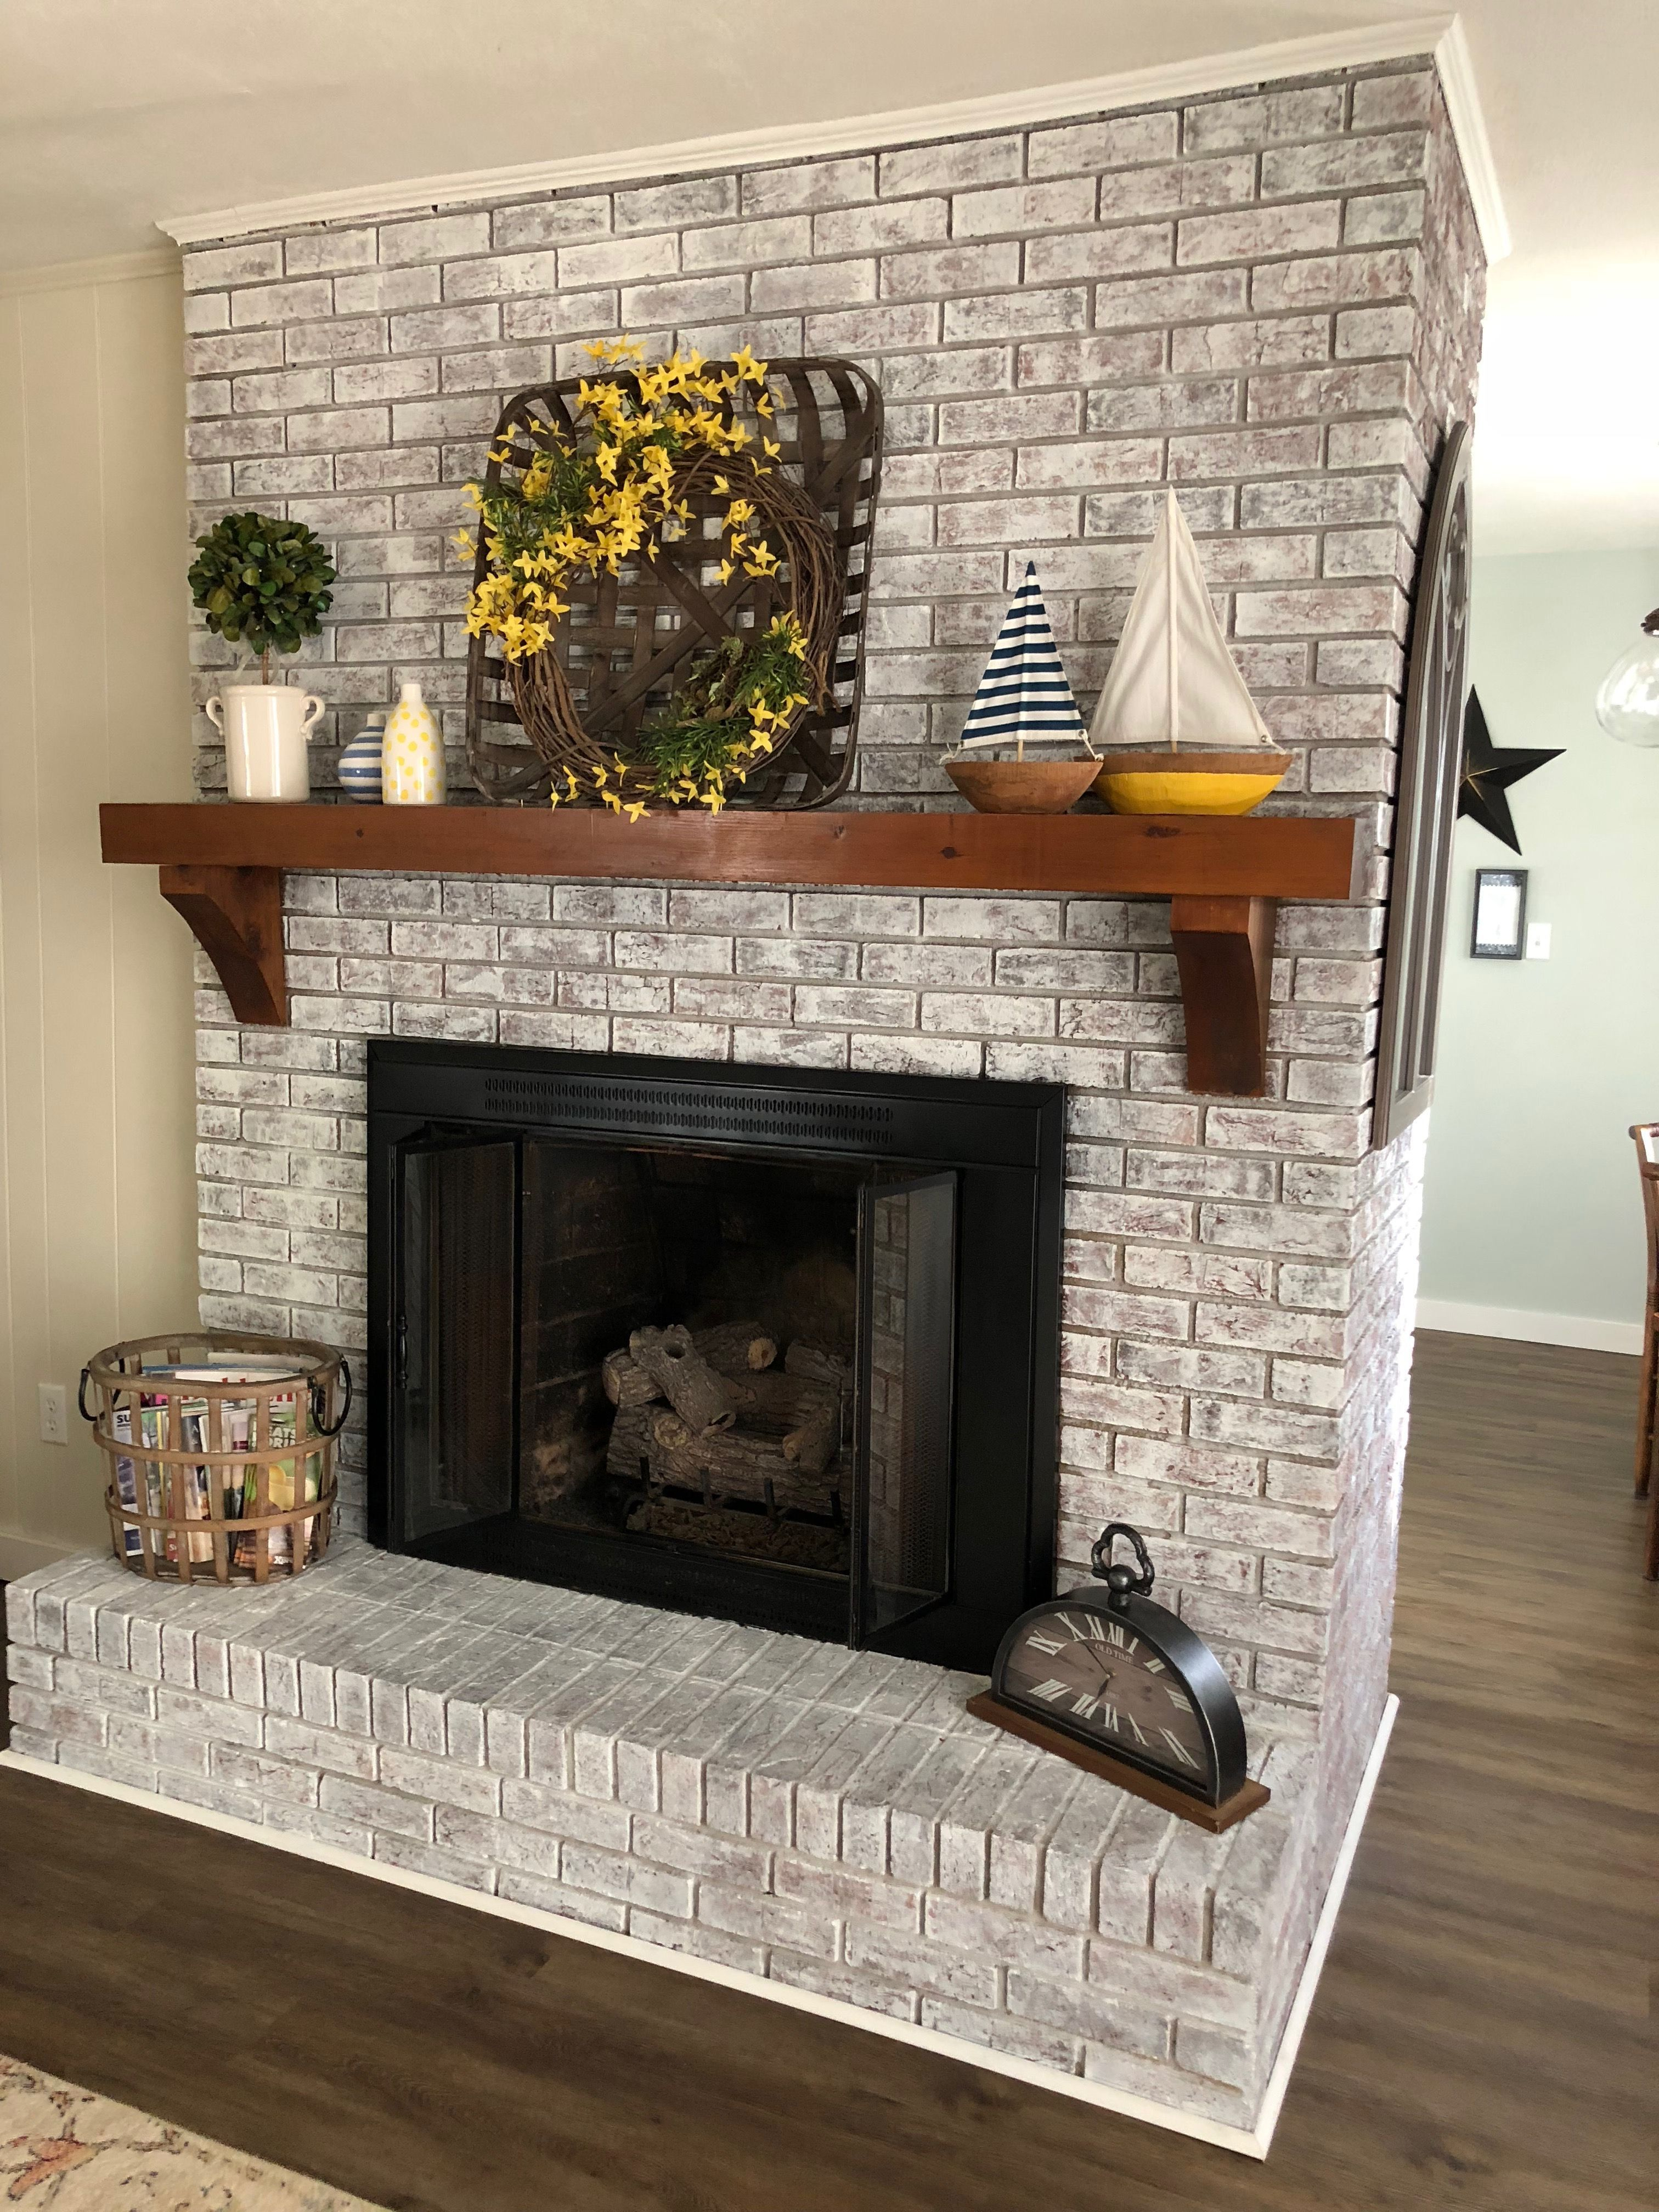 10 Valuable Hacks Black Fireplace Design Fireplace Candles Blankets Fireplace Candle Painted Brick Fireplaces White Wash Brick Fireplace Brick Fireplace Decor